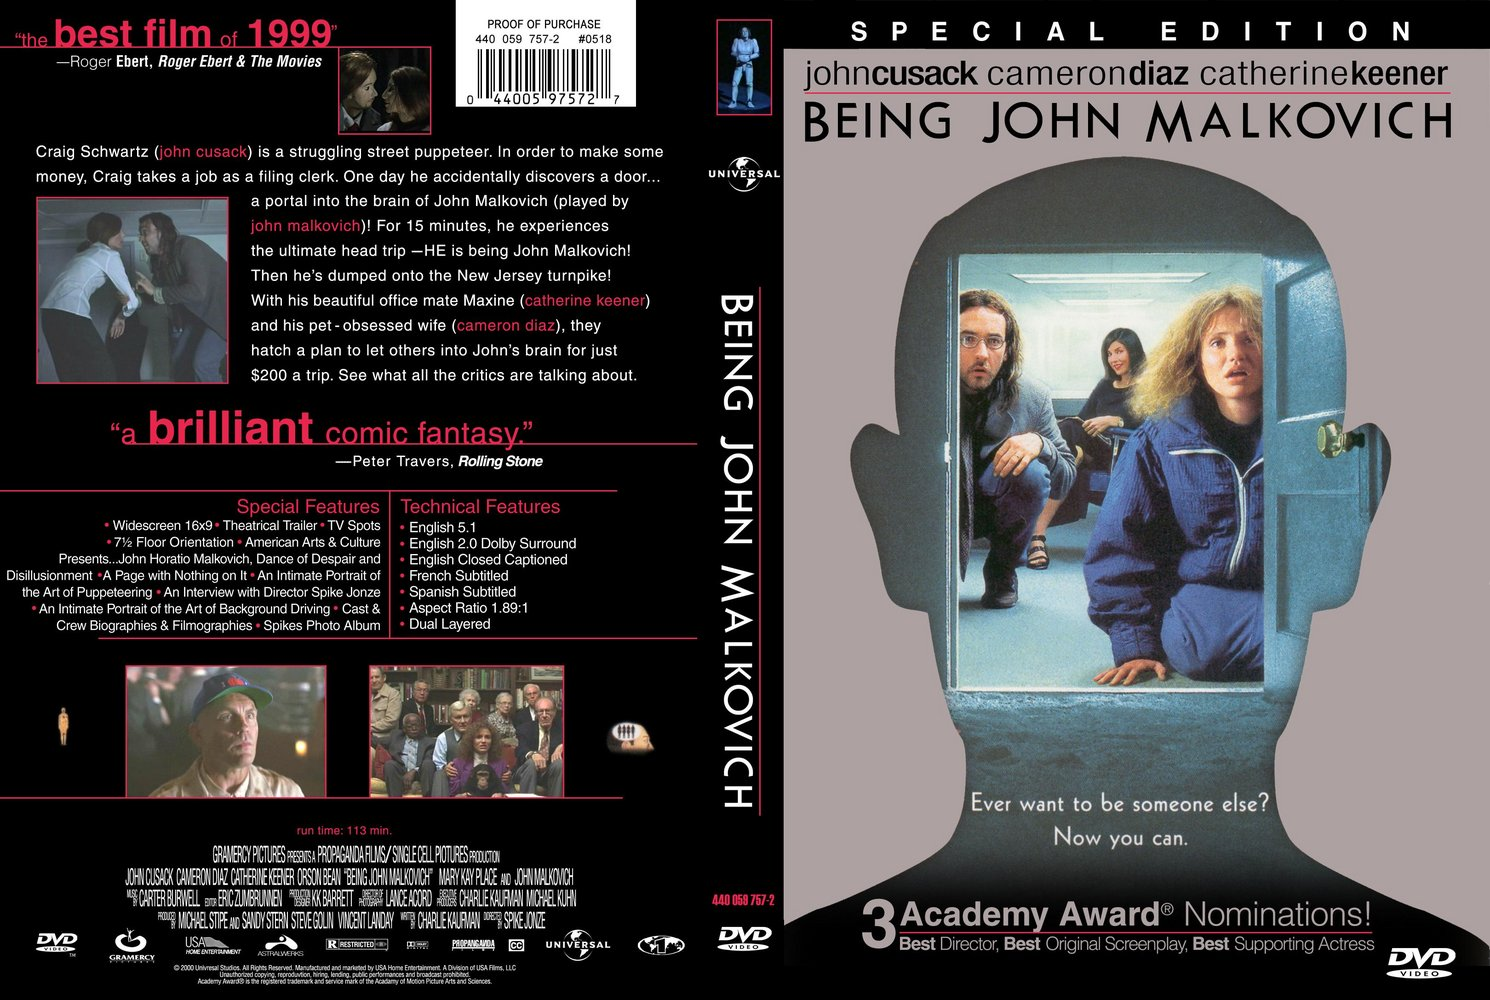 being john malkovich 300mb download